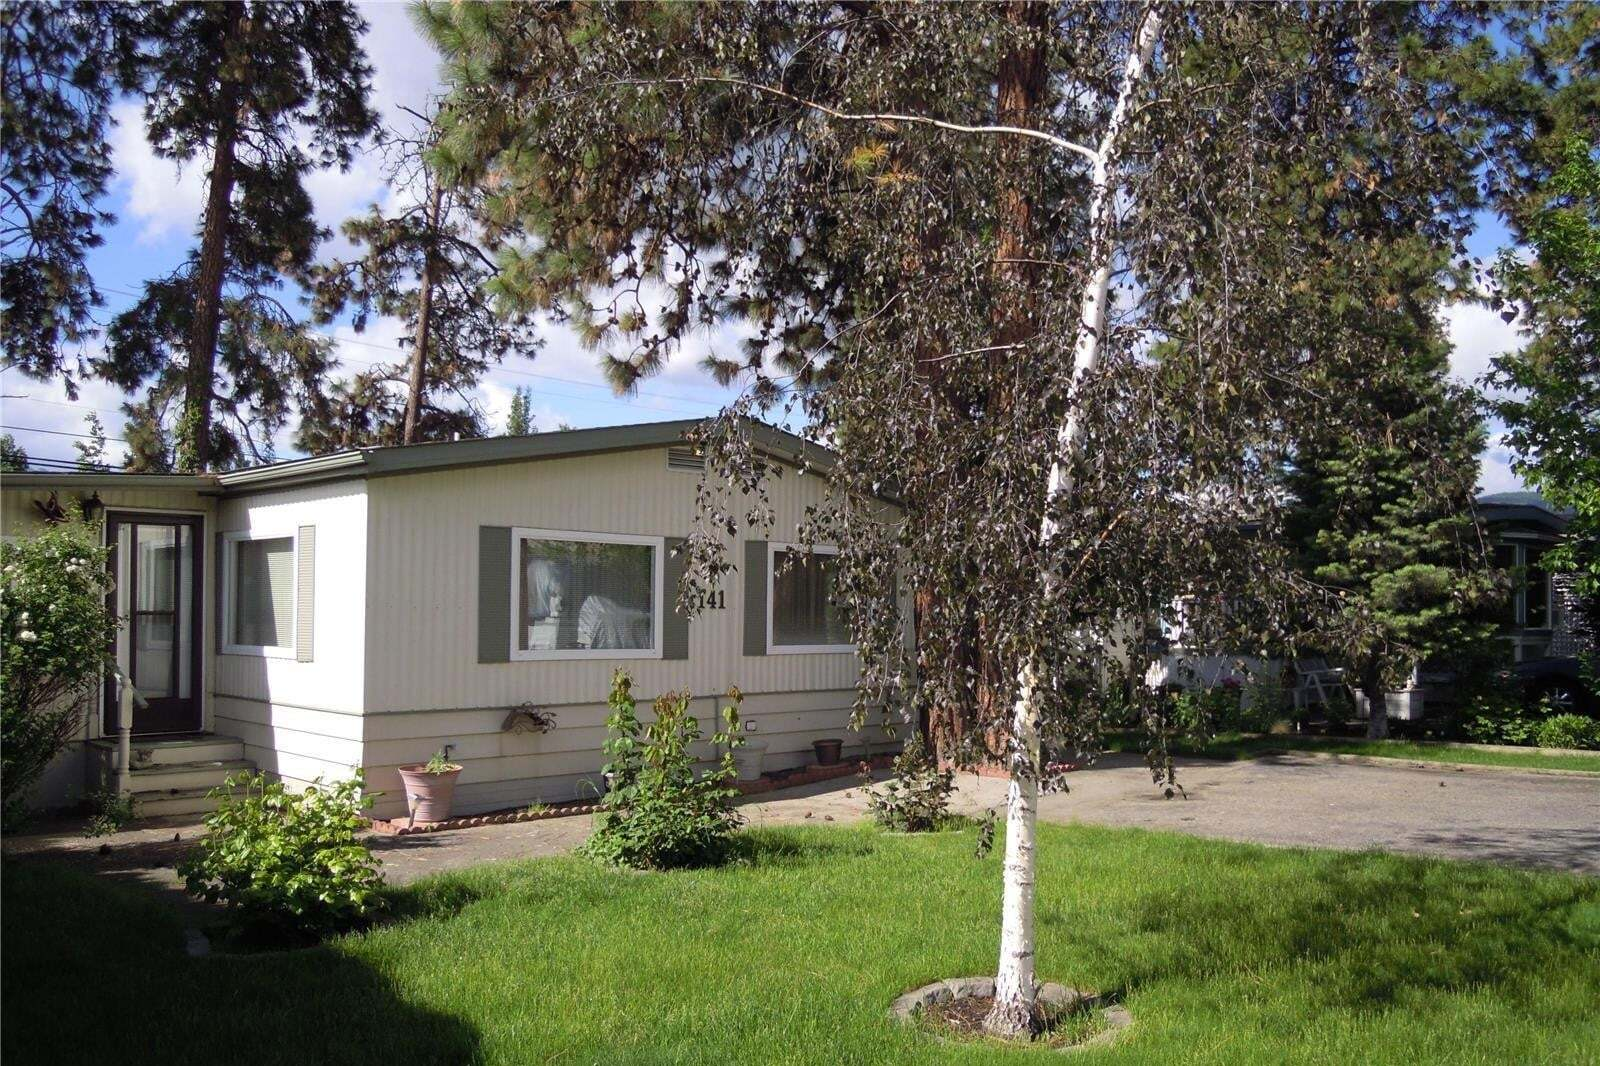 Home for sale at 1880 Old Boucherie Rd West Kelowna British Columbia - MLS: 10205710